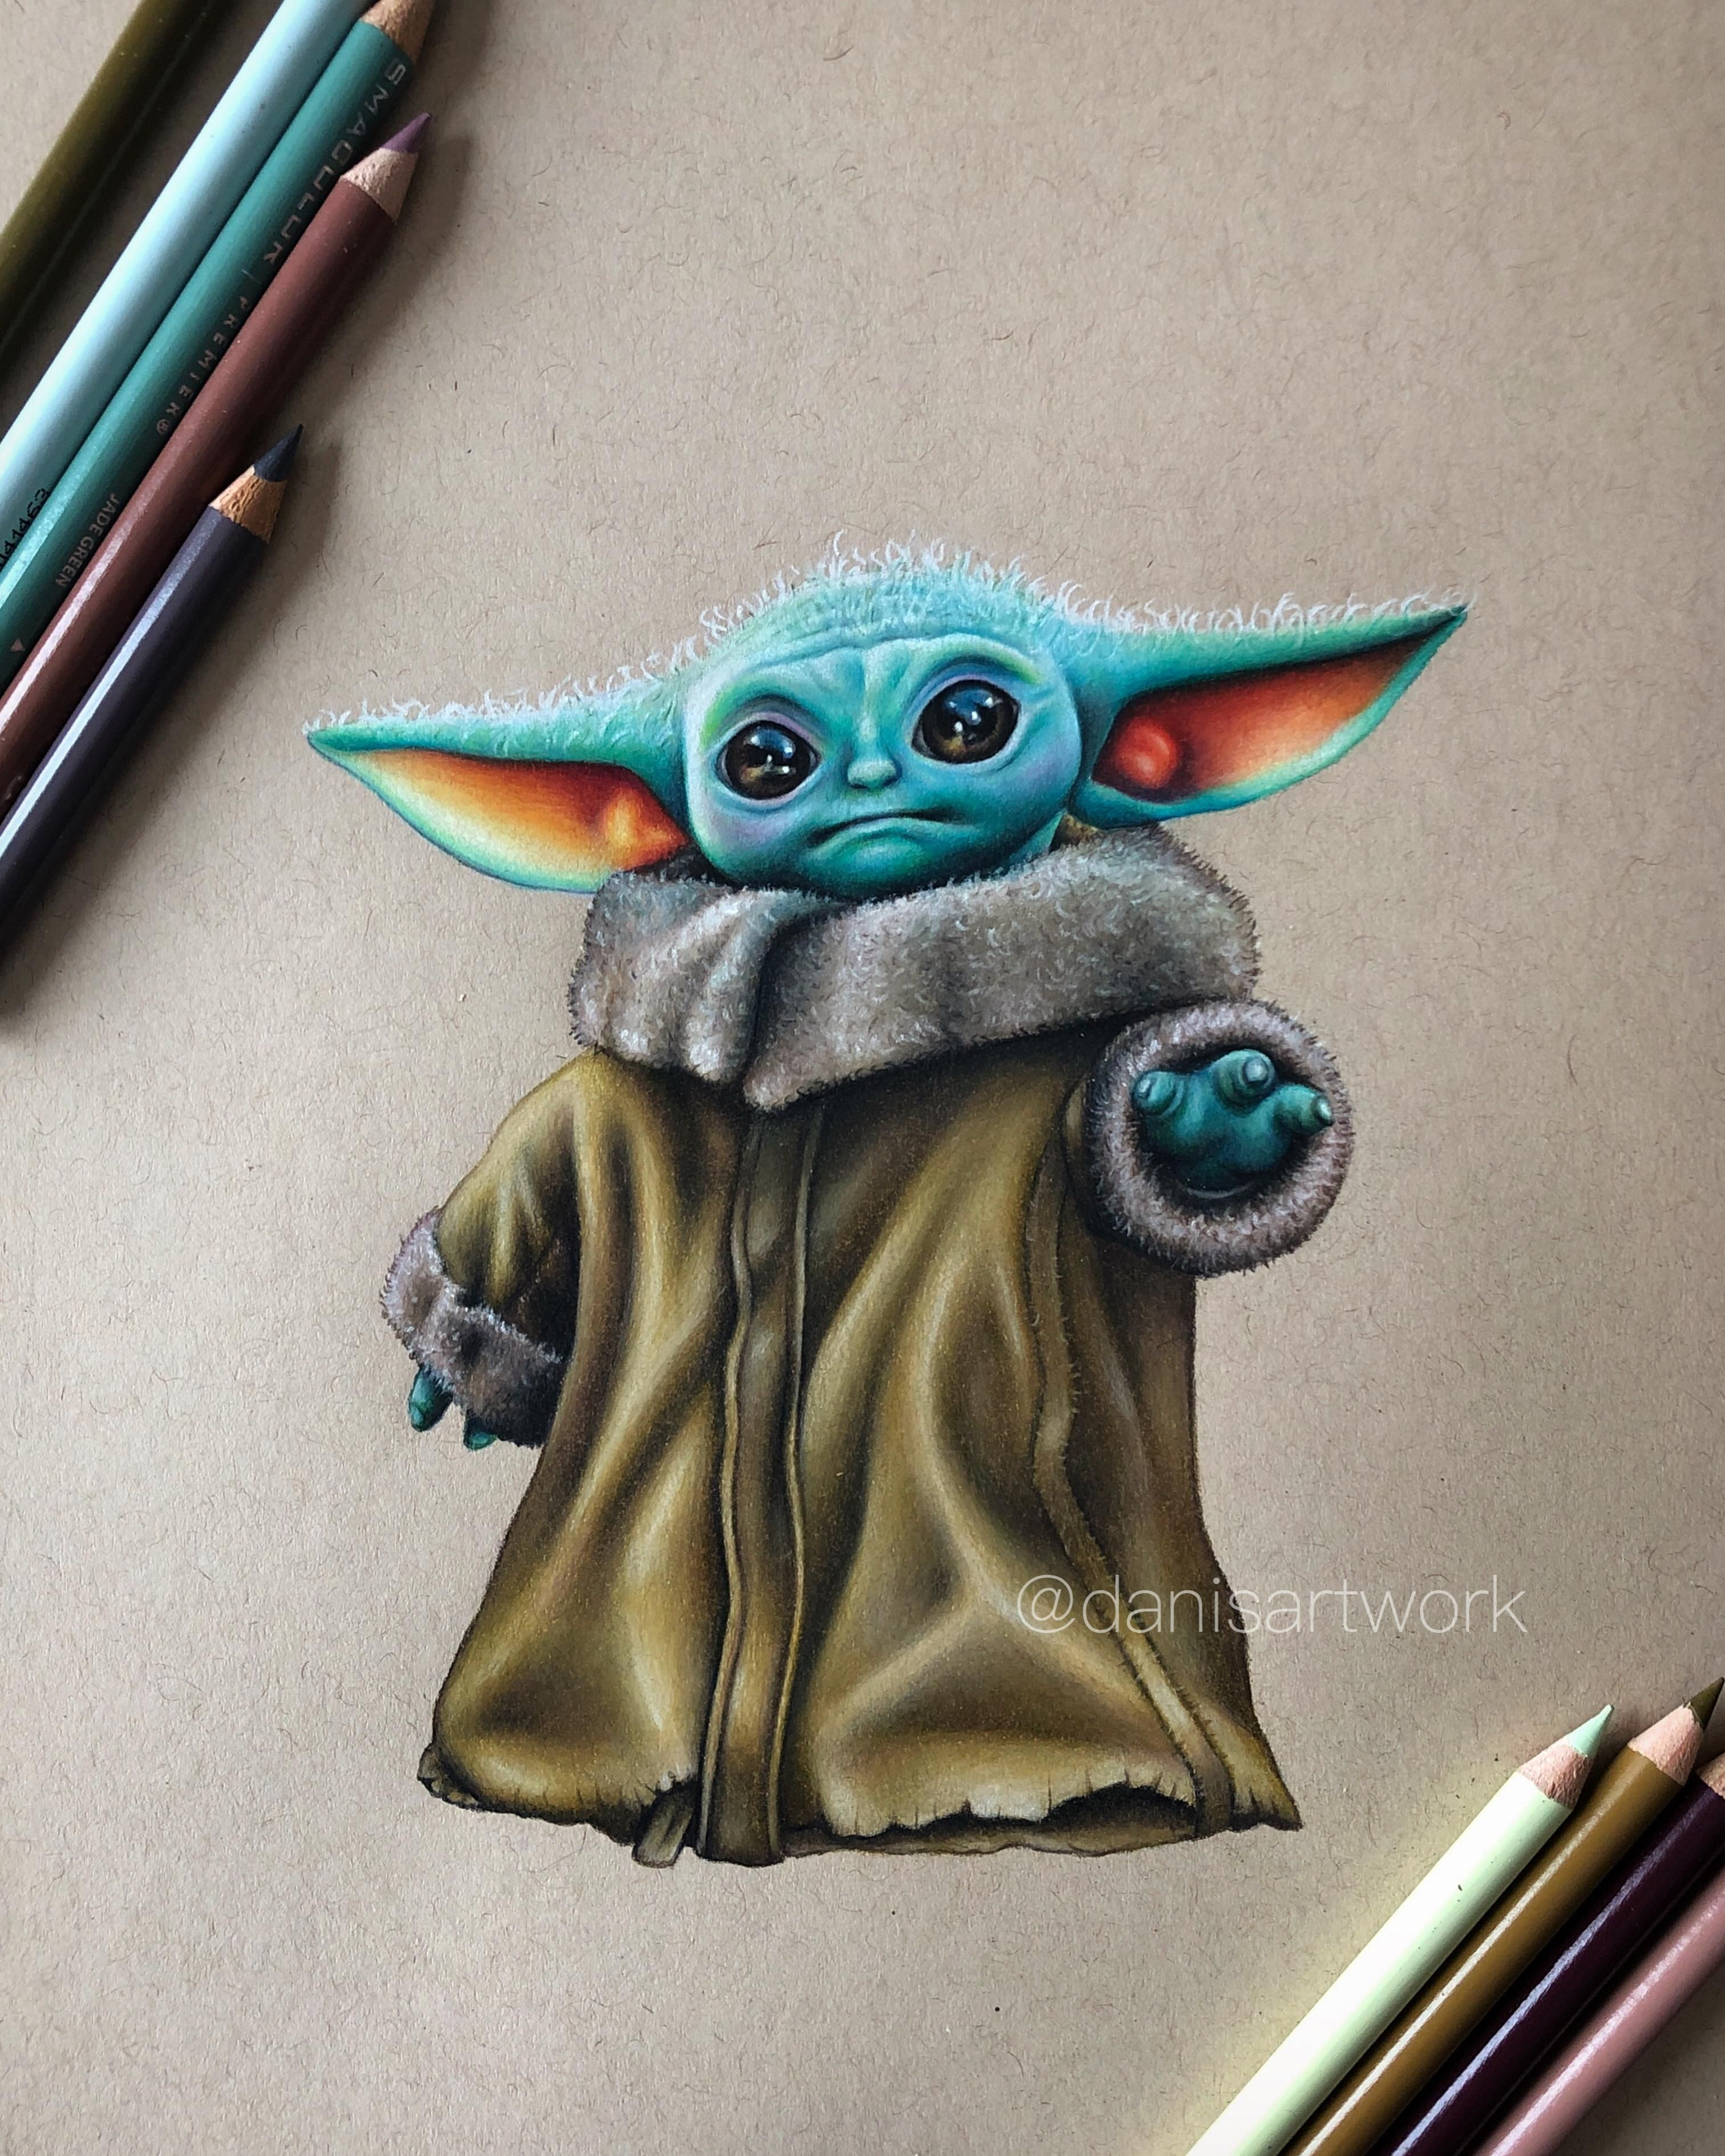 I Finished My Coloured Pencil Drawing Of Baby Yoda In 2021 Star Wars Drawings Star Wars Art Drawings Prismacolor Art